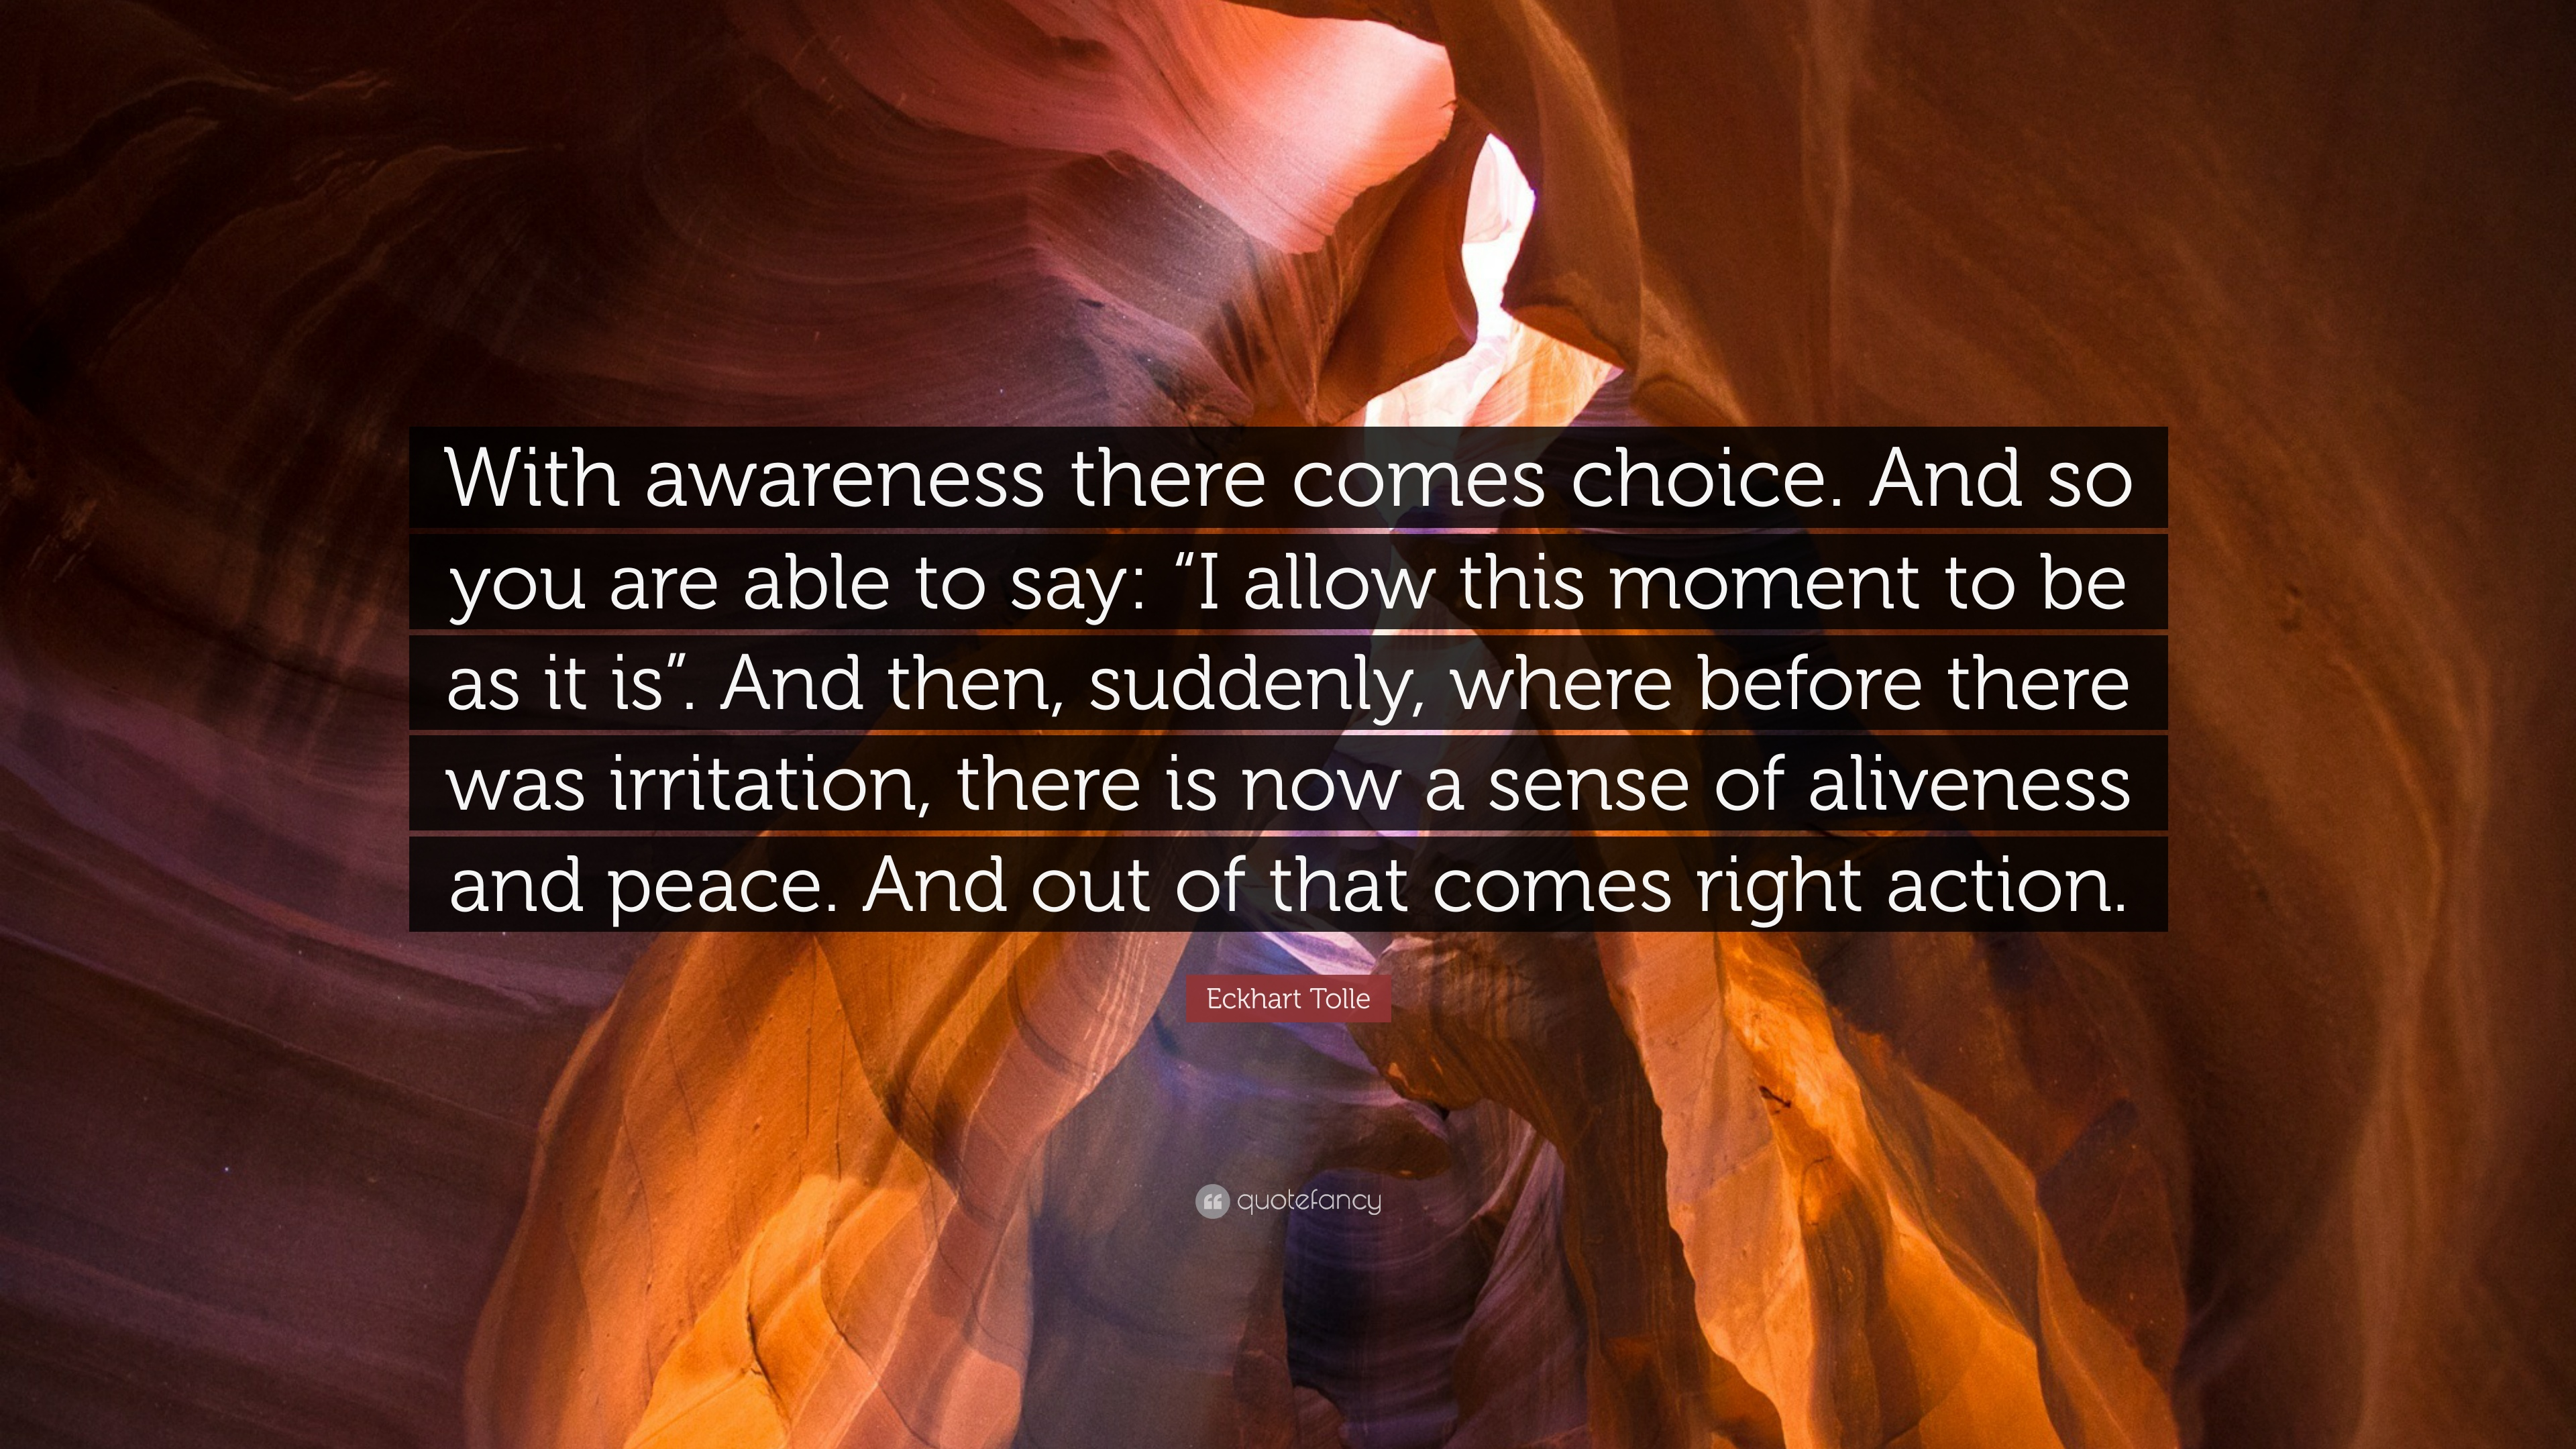 139964-Eckhart-Tolle-Quote-With-awareness-there-comes-choice-And-so-you.jpg